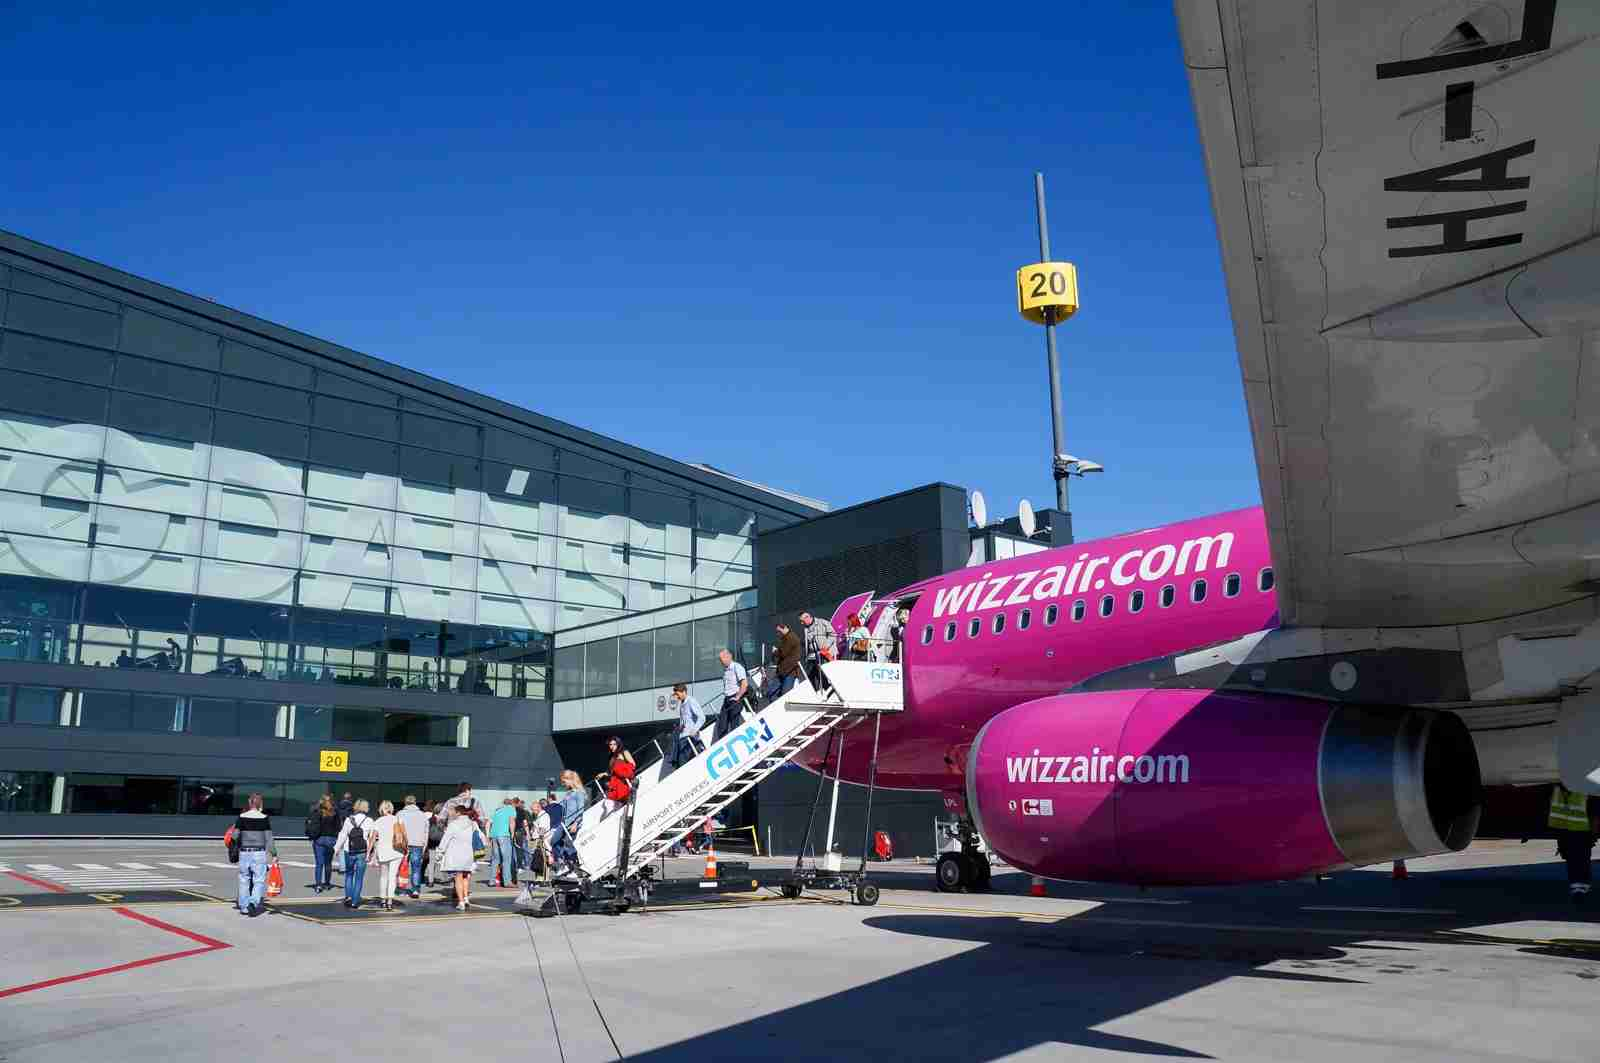 A Wizz Air Airbus A320. (Photo via Getty Images)